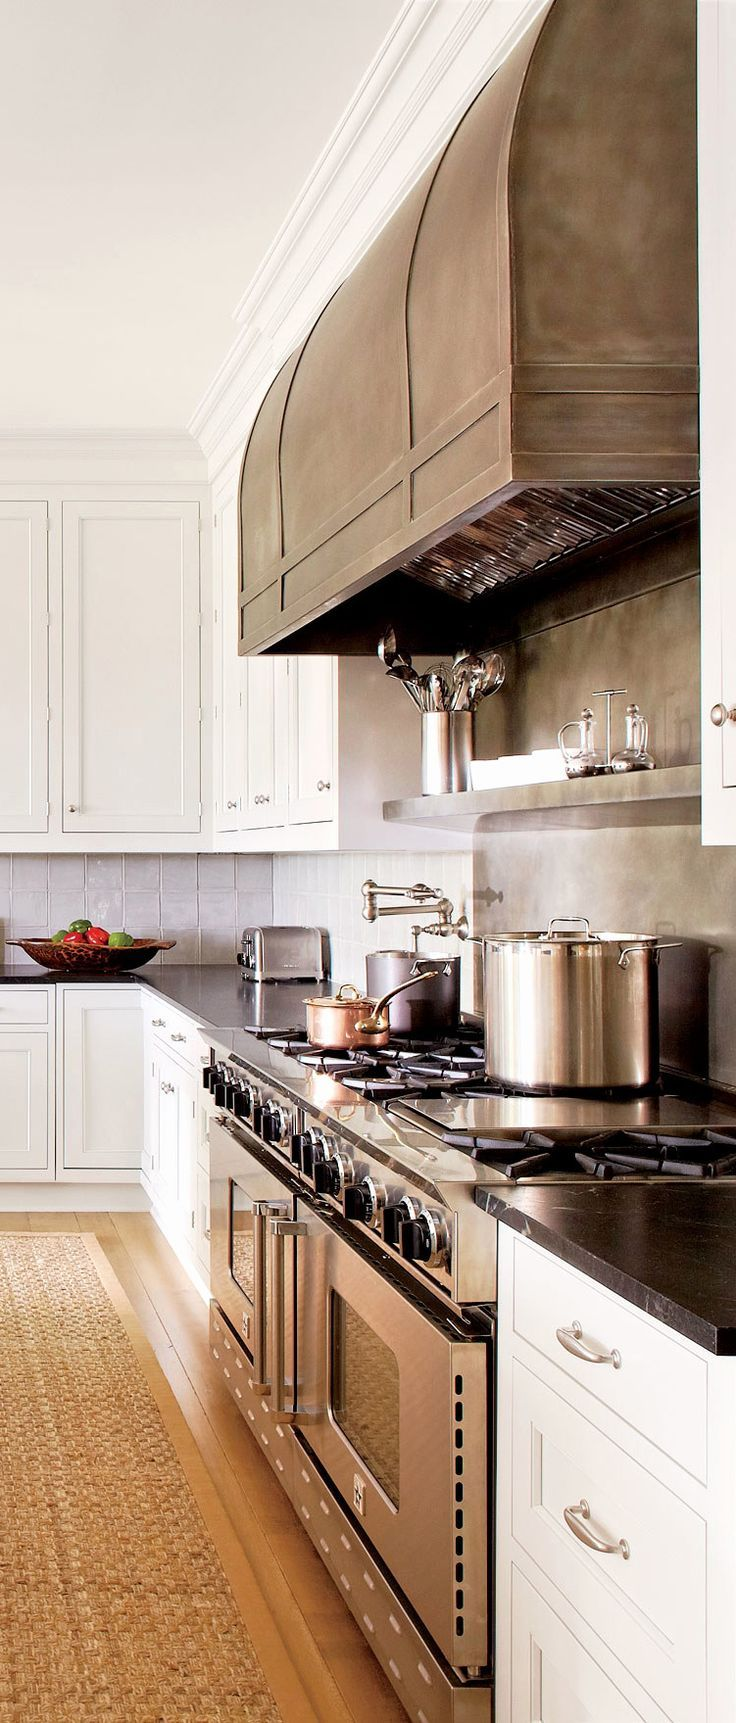 Build Your Own Kitchen Cabinet Beautiful Neutral Kitchen With Wood Floors White Cabinets And